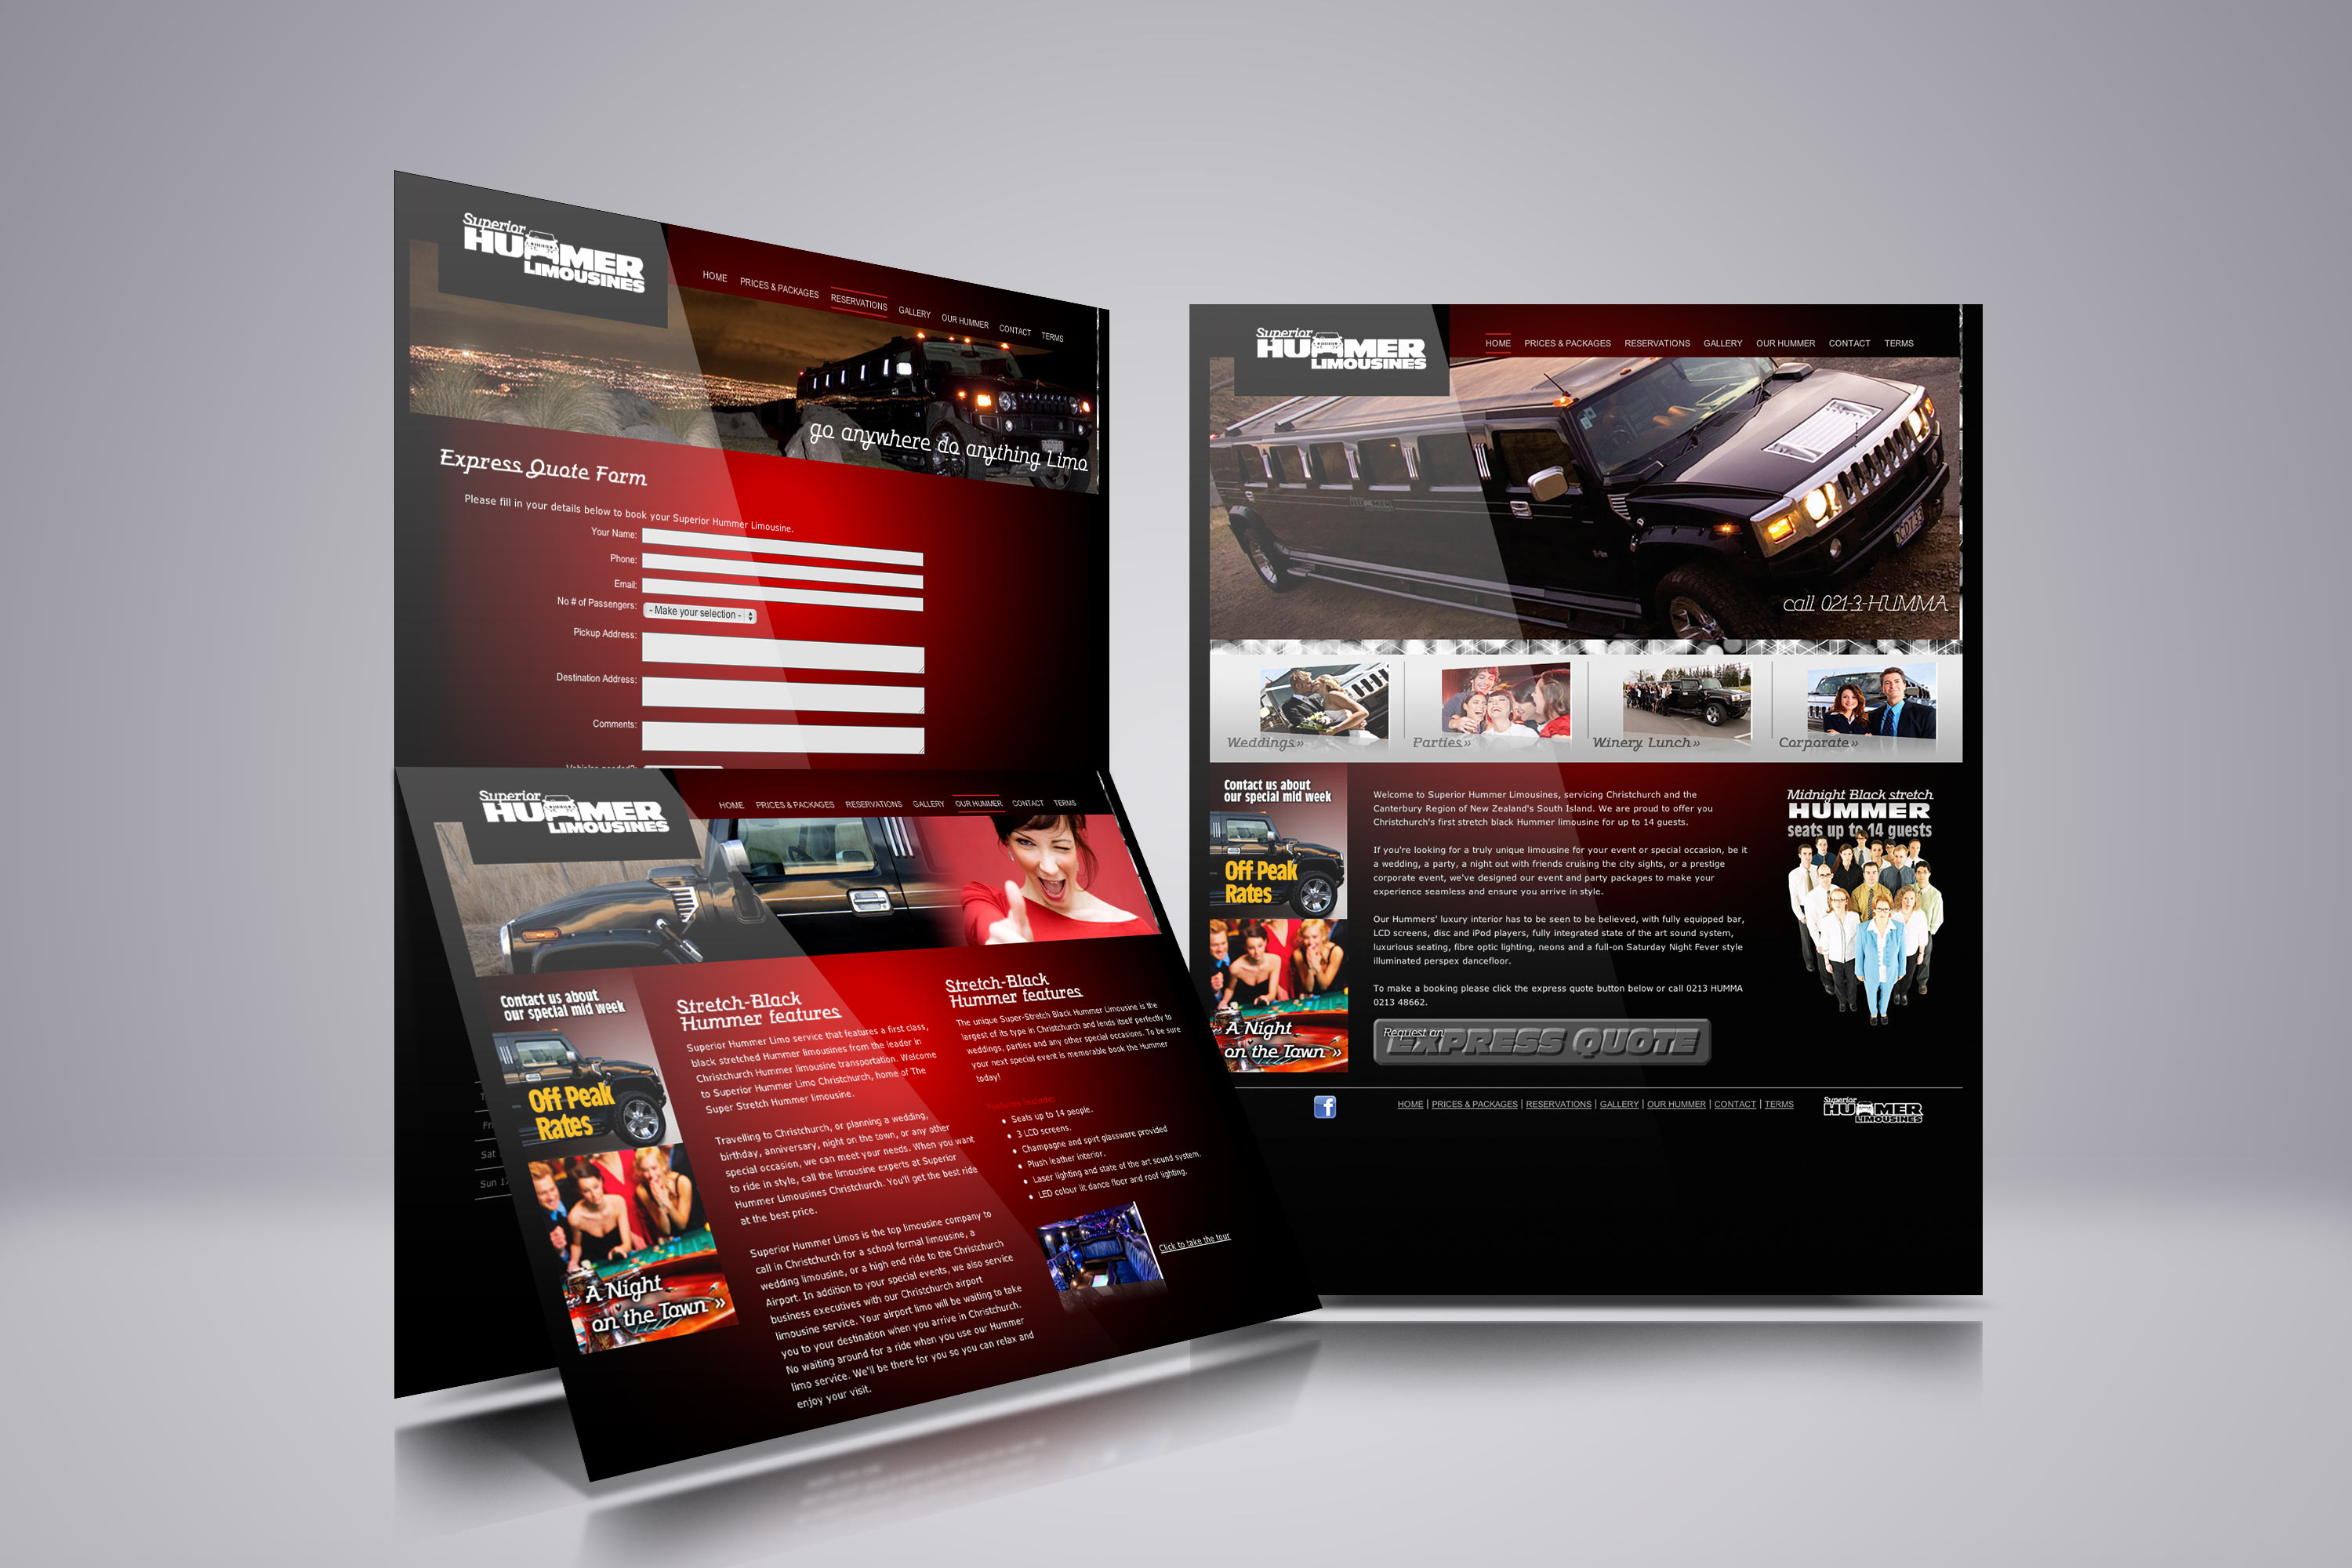 Superior Hummer Limousines web design showcase